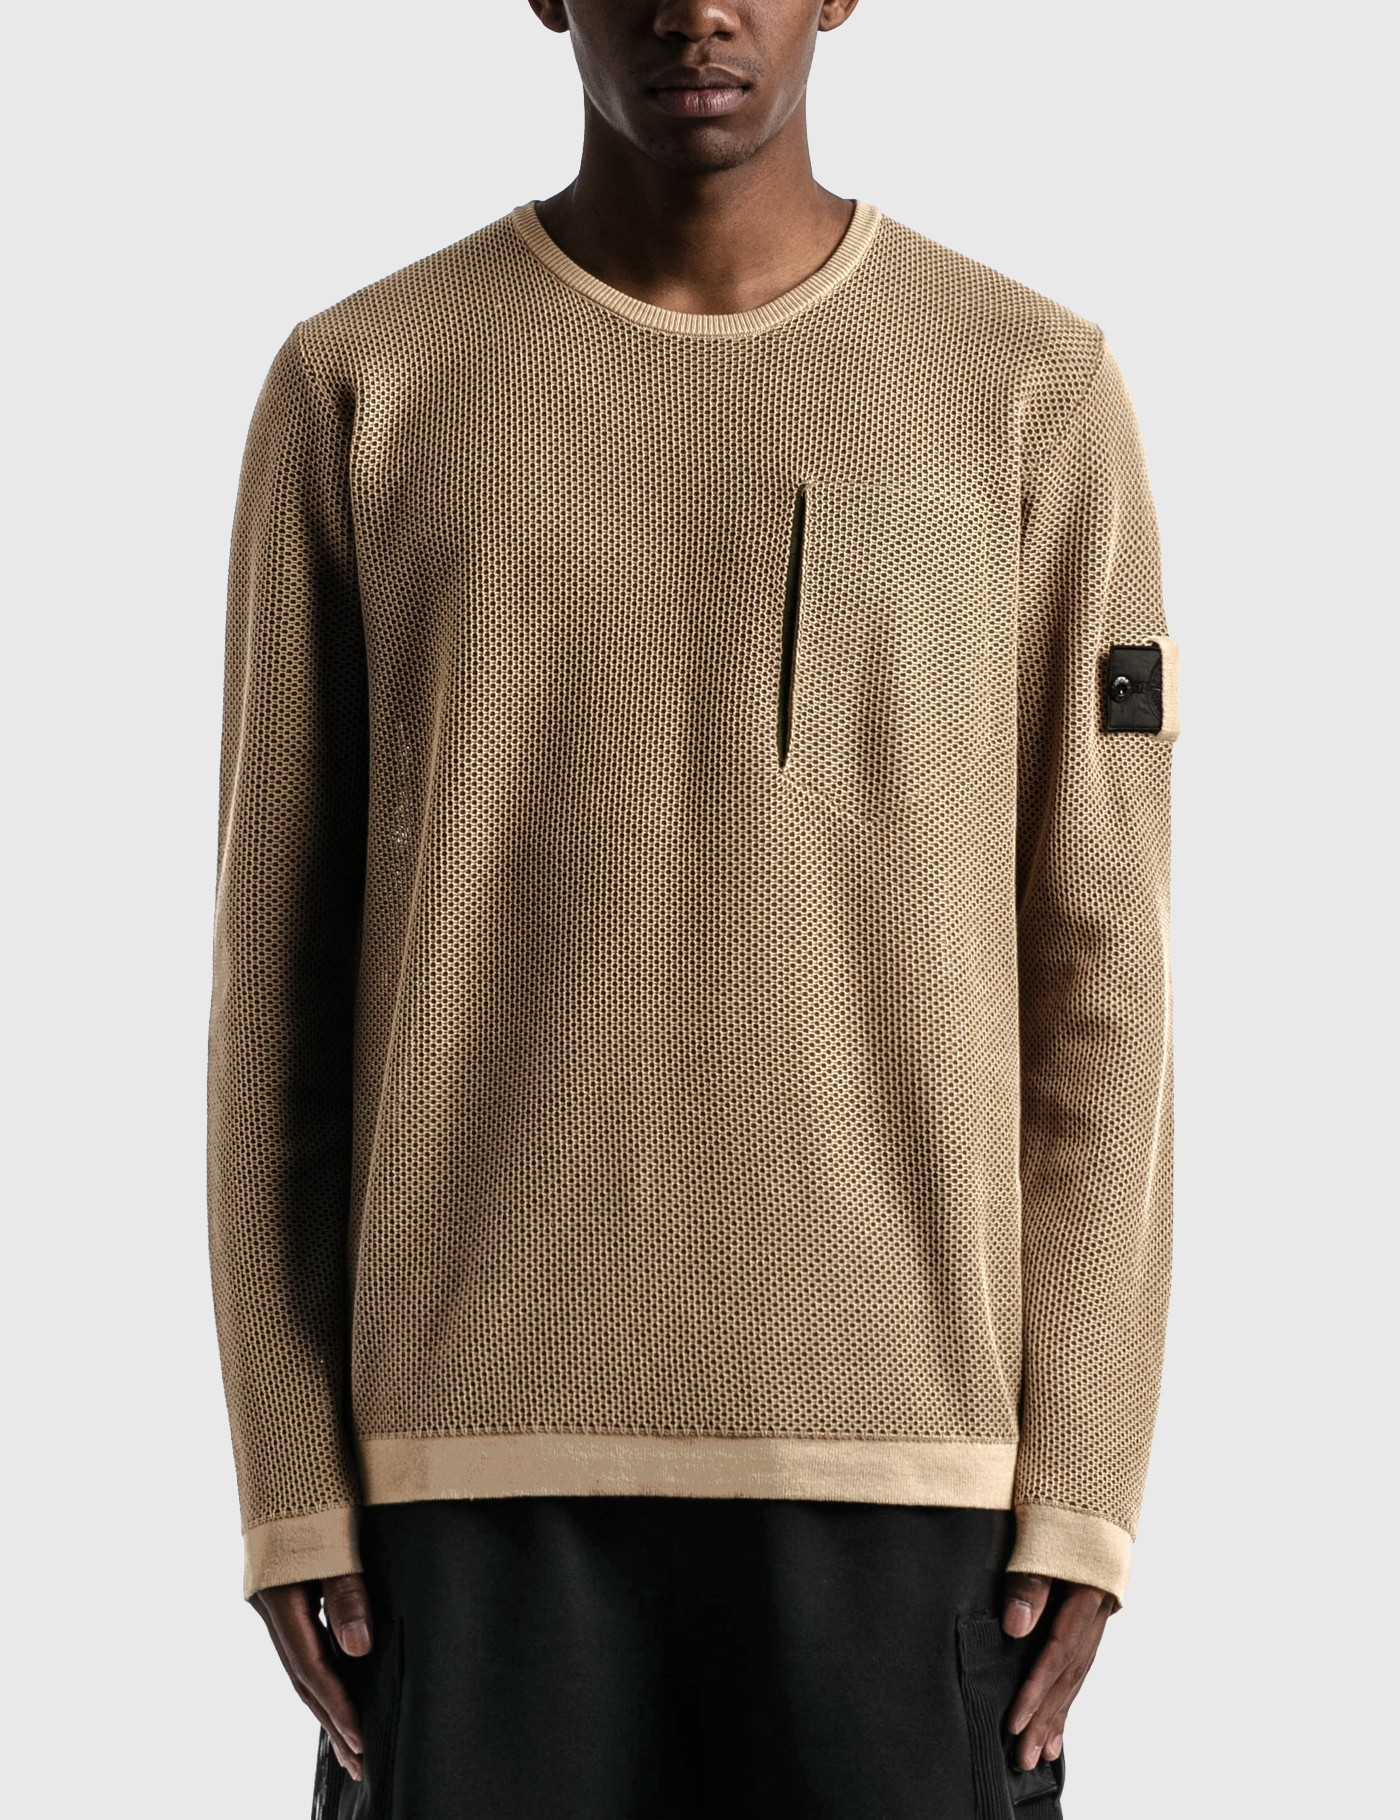 Stone Island Shadow Project LIGHT MESH KNIT CREWNECK